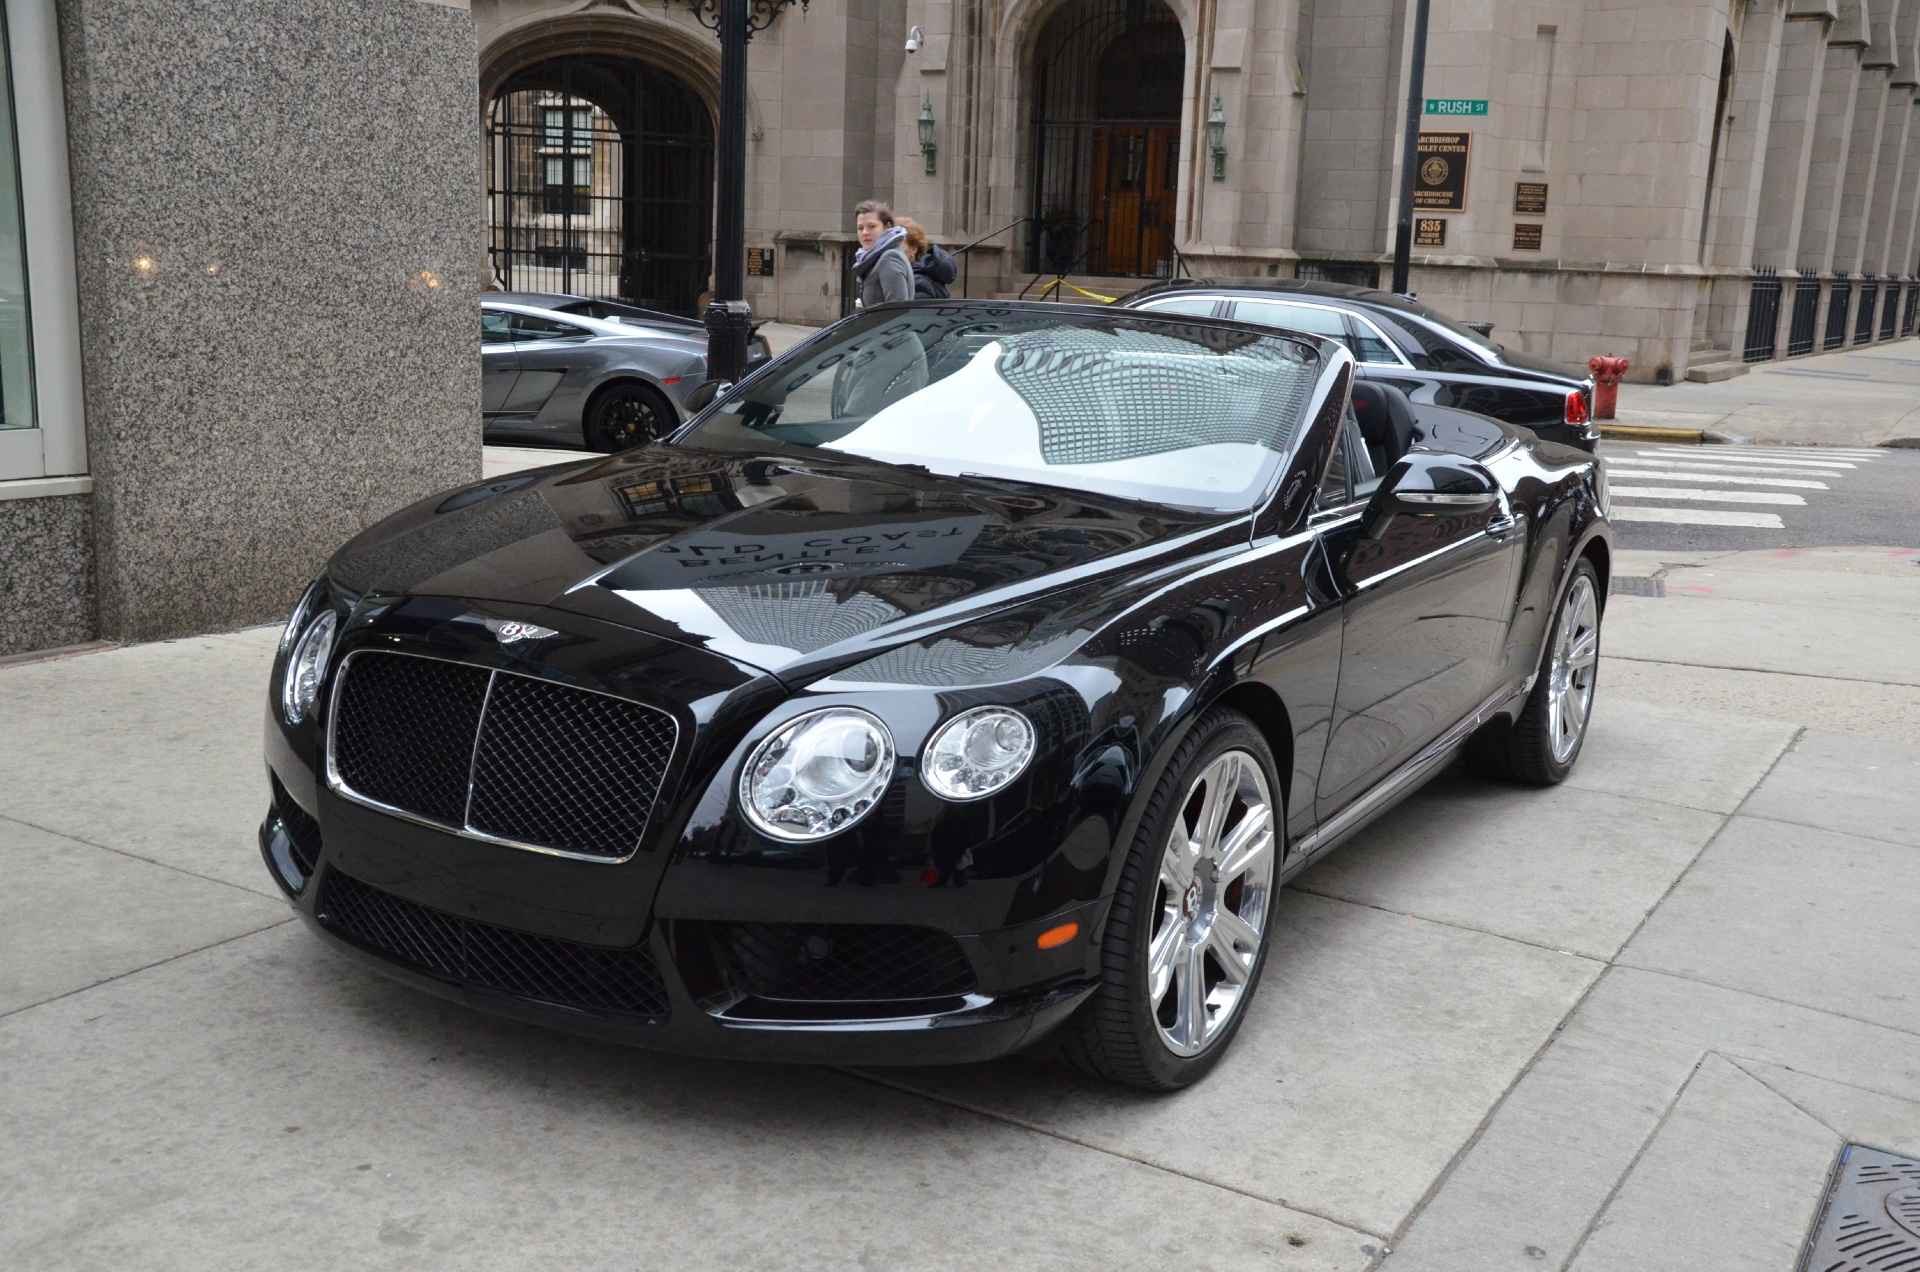 2013 bentley continental gtc v8 used bentley used rolls royce. Cars Review. Best American Auto & Cars Review